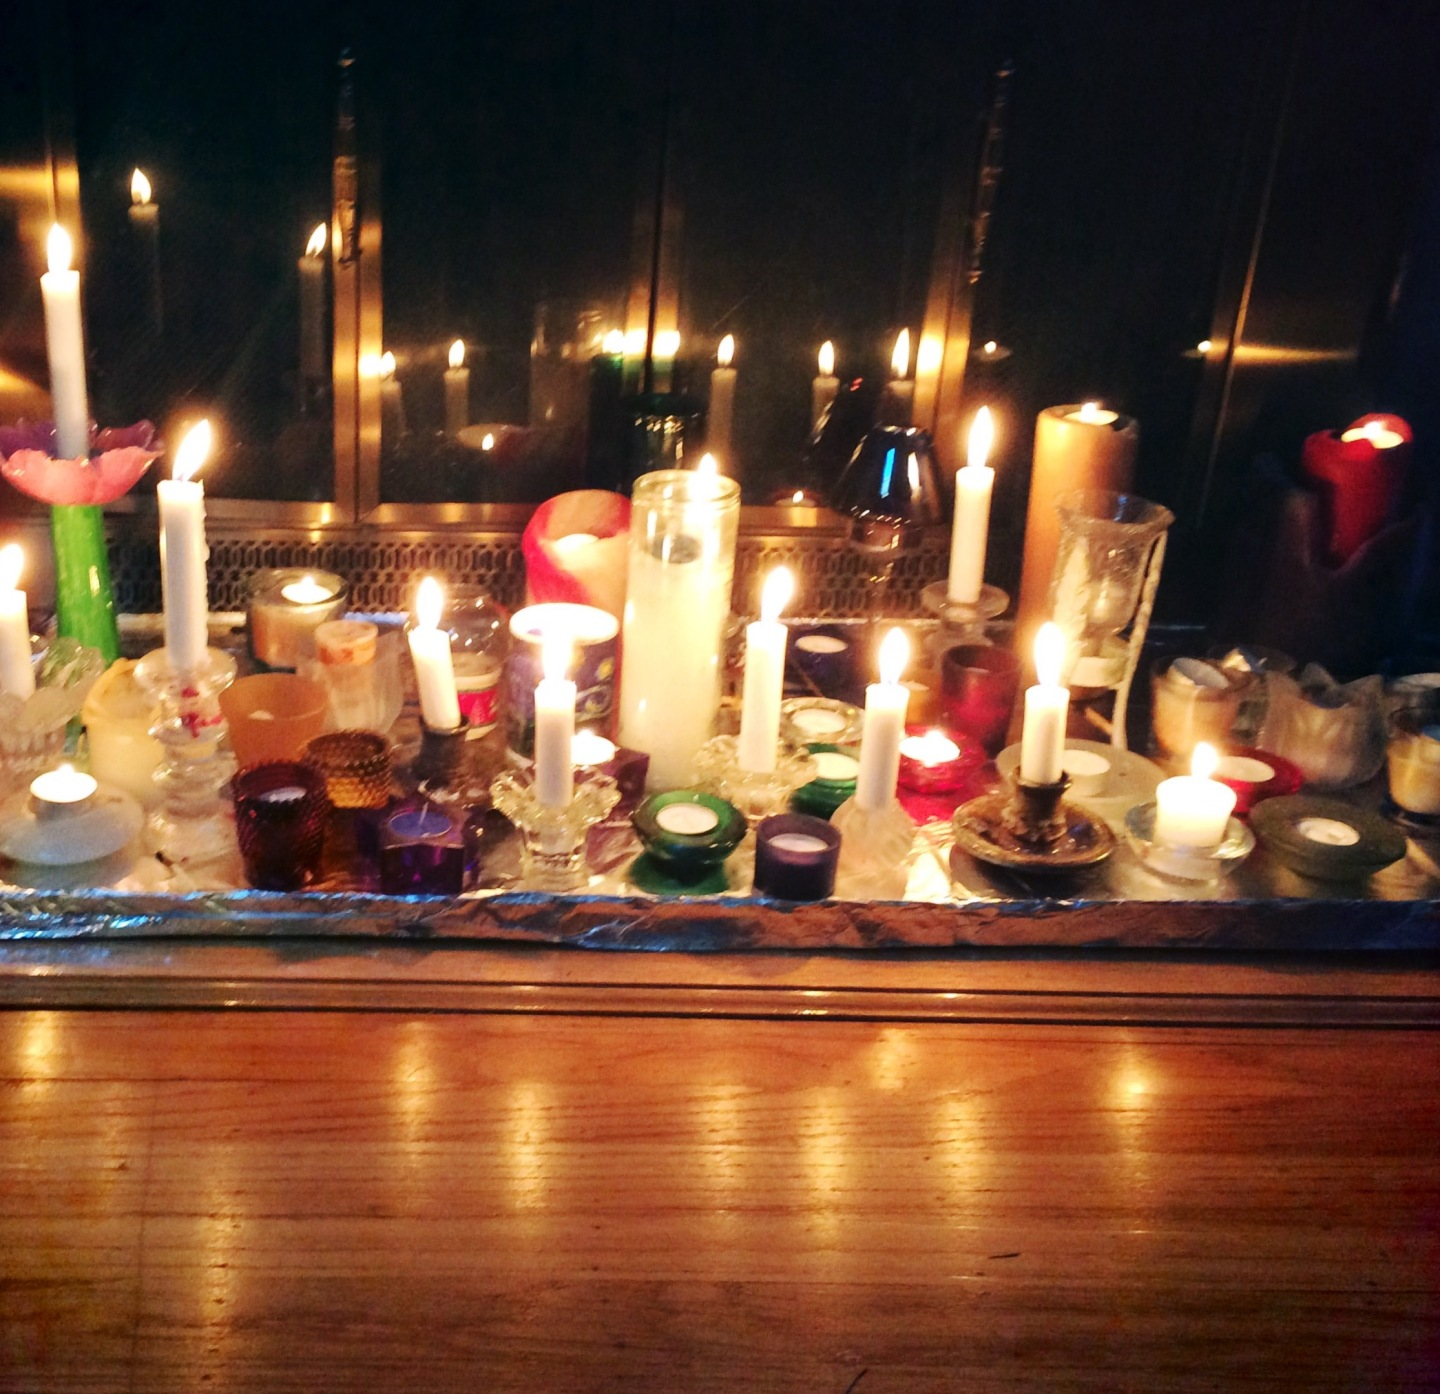 Candles on the hearth